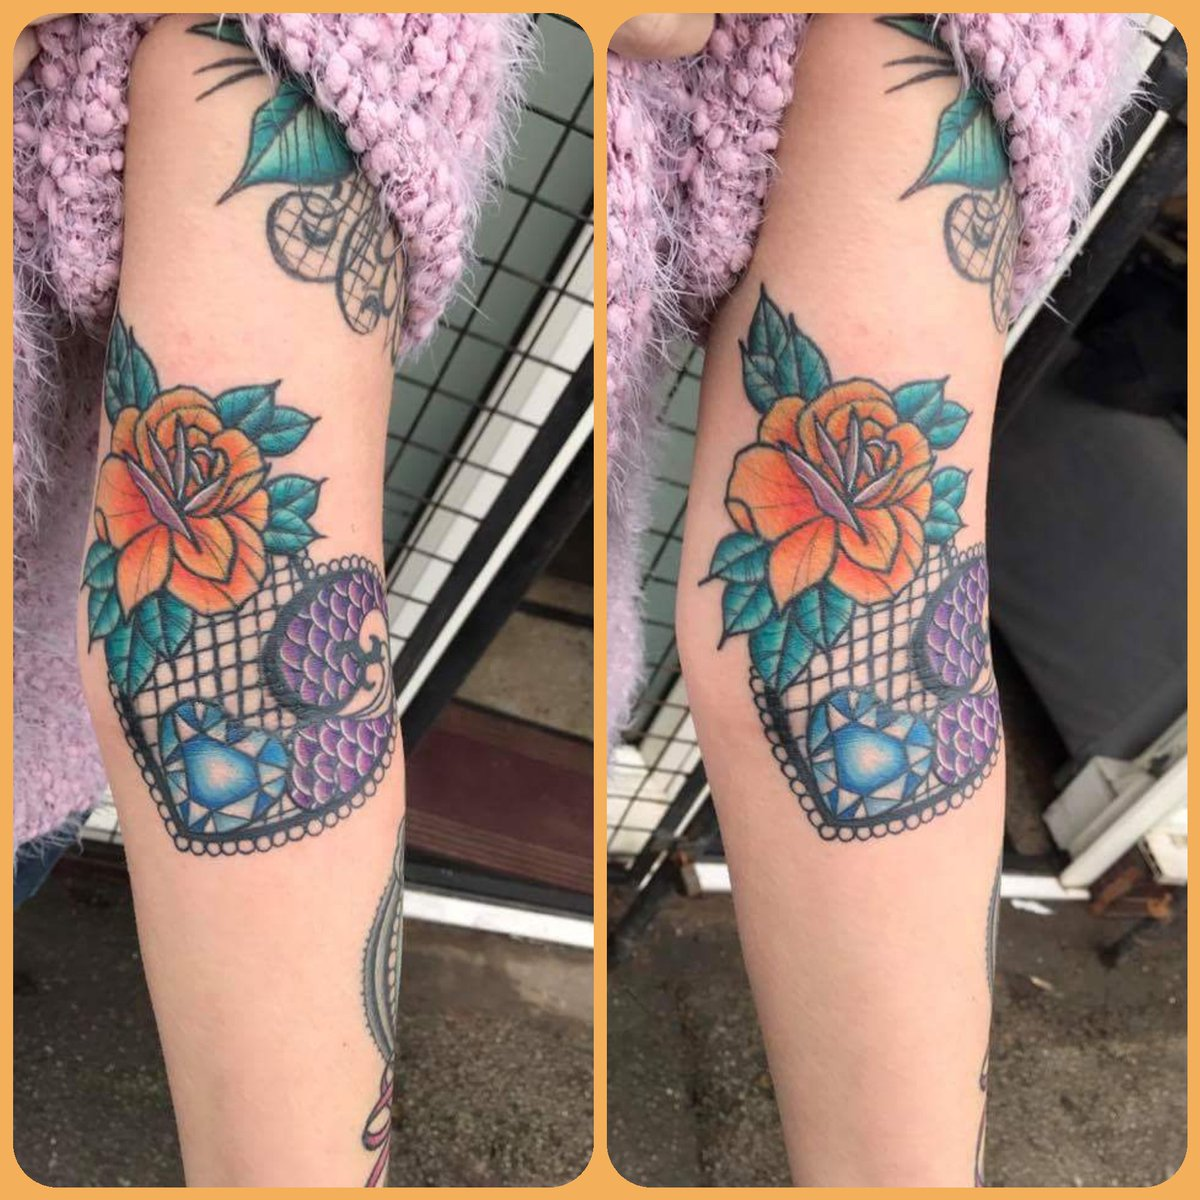 Something girly from JC #BoldandBeautiful #boldwithhold #colour #tattoo #Flowers #lace #Macclesfield #CarpeDiem #yayofamilia @CarpeDiemJC_ @MagnumTattoo @MacclesfieldRT @EternalInk @WorldFamousInk @starrtattoo   carpe-diem-tattoo@hotmail.co.uk<br>http://pic.twitter.com/vwHbWrYK3B